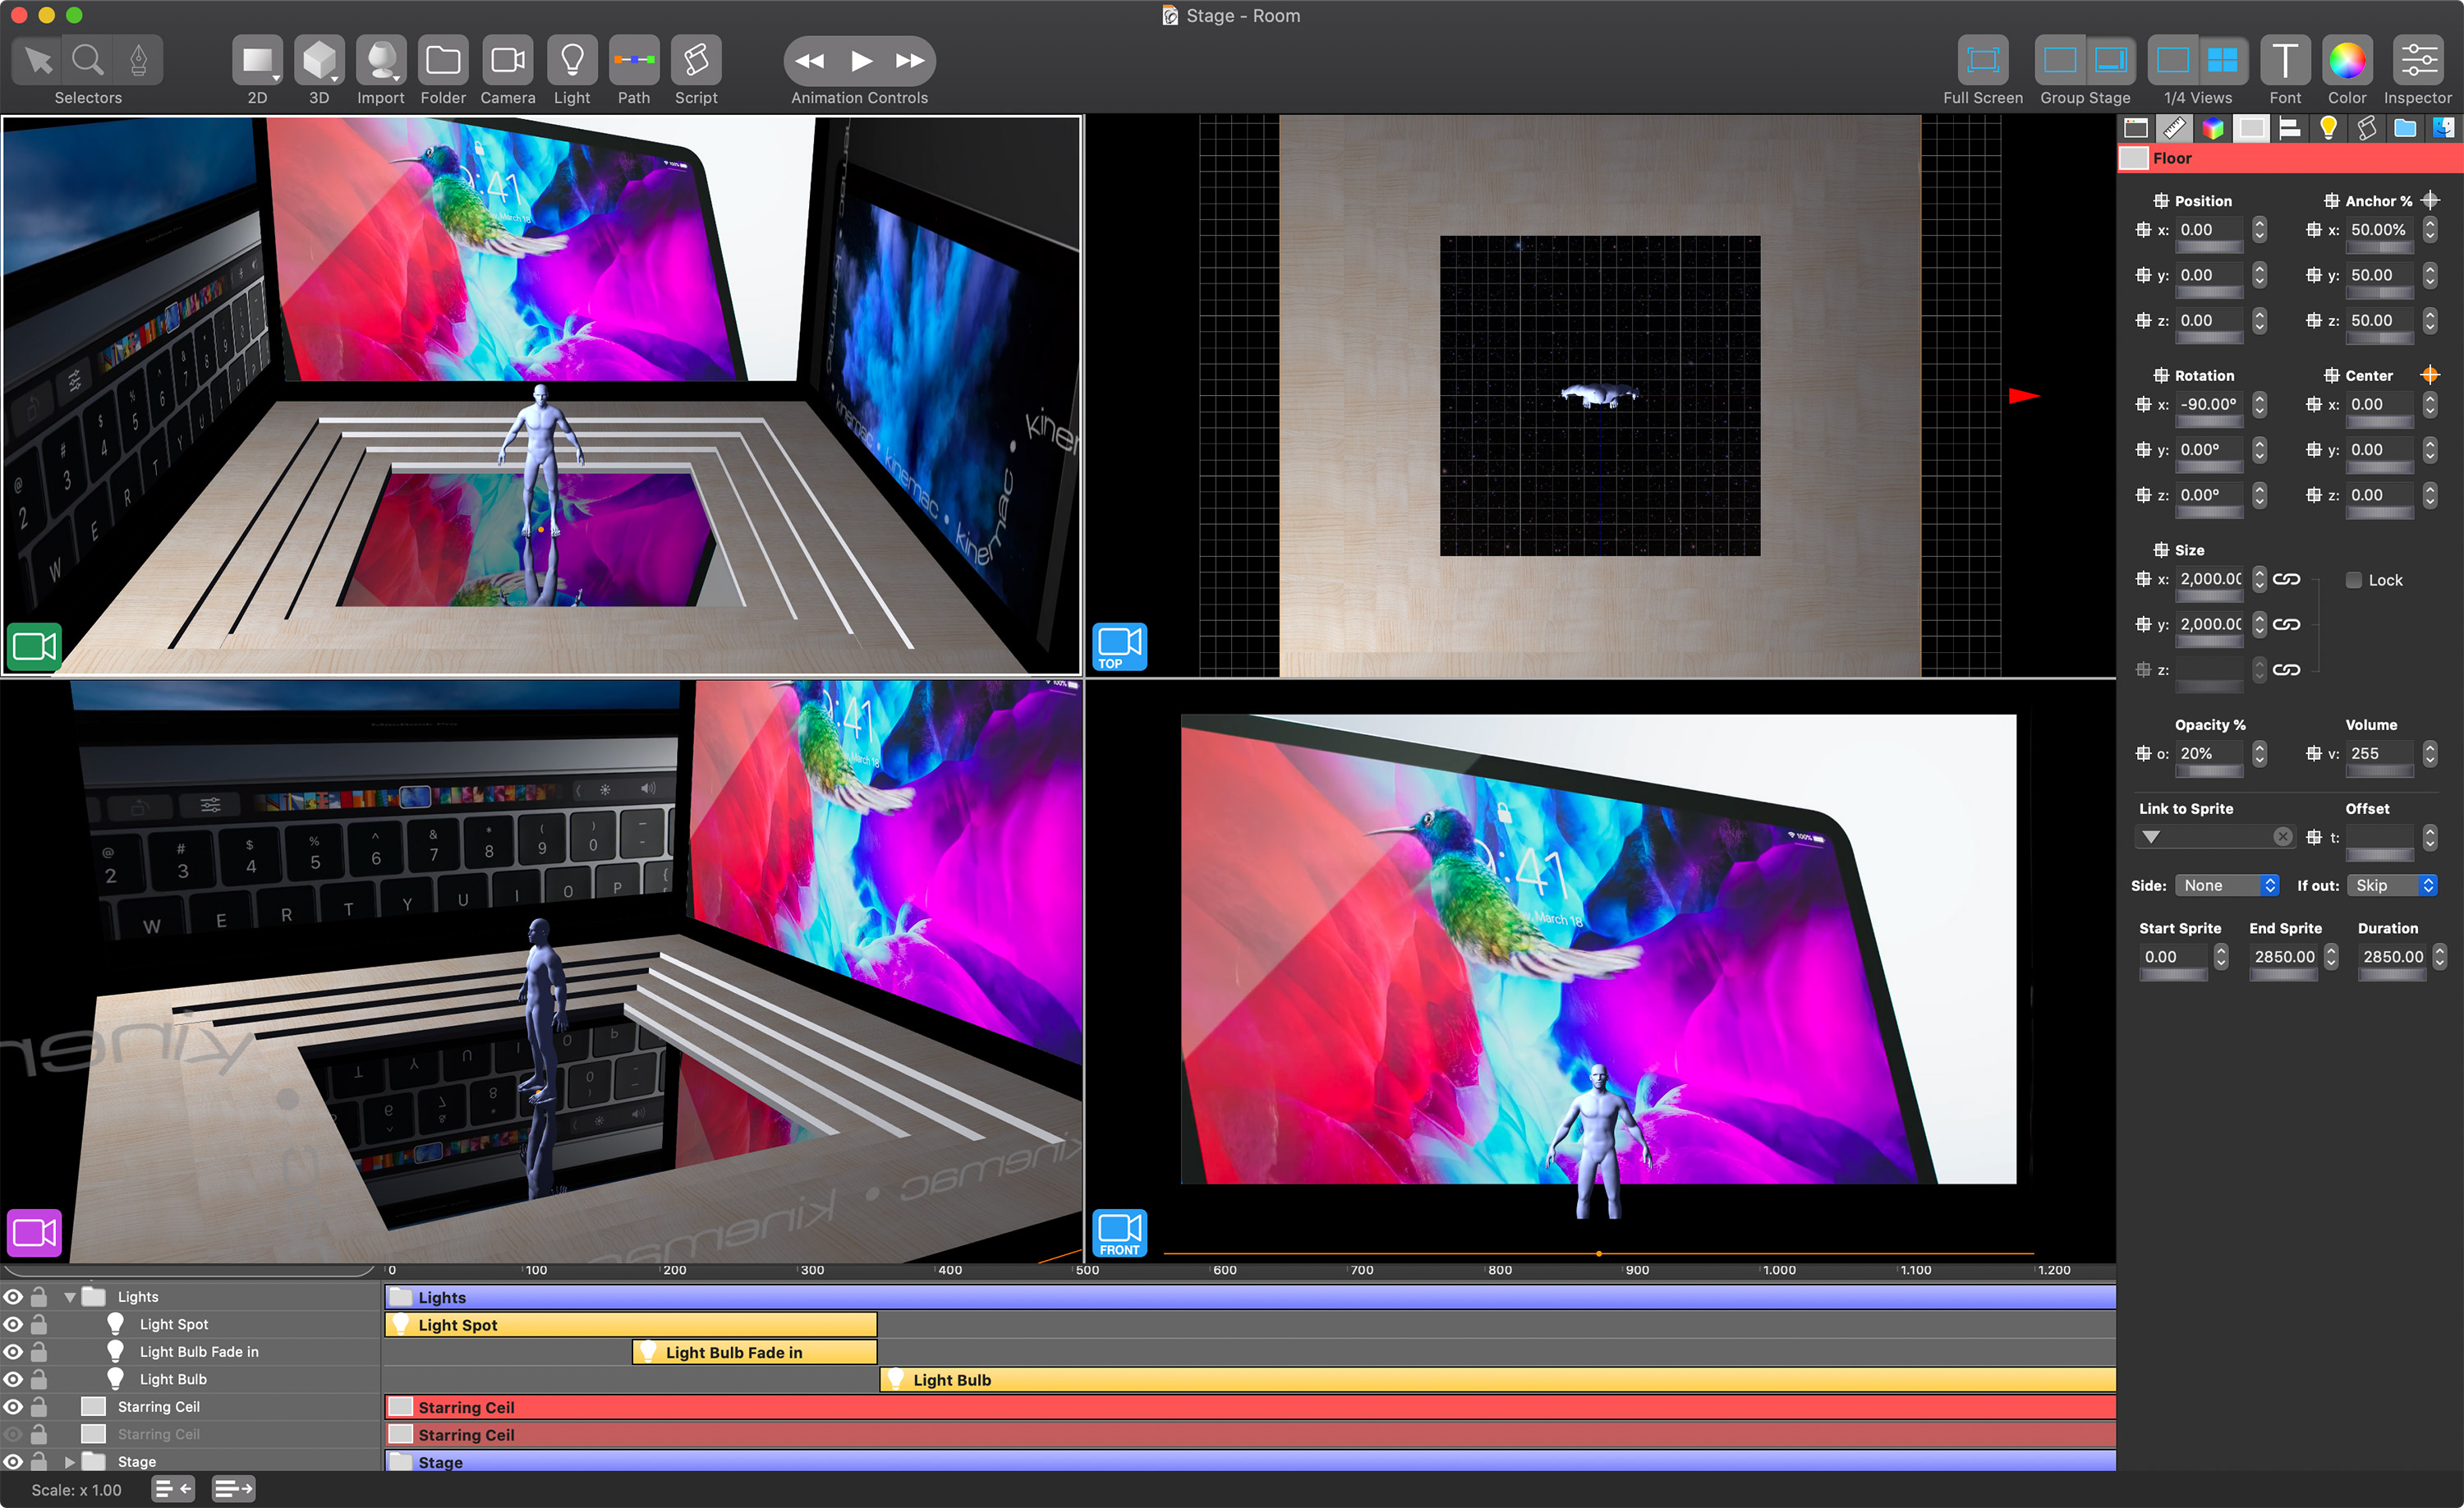 Kinemac 2.0.4 Released for macOS - 3D Real Time Animation Software Image